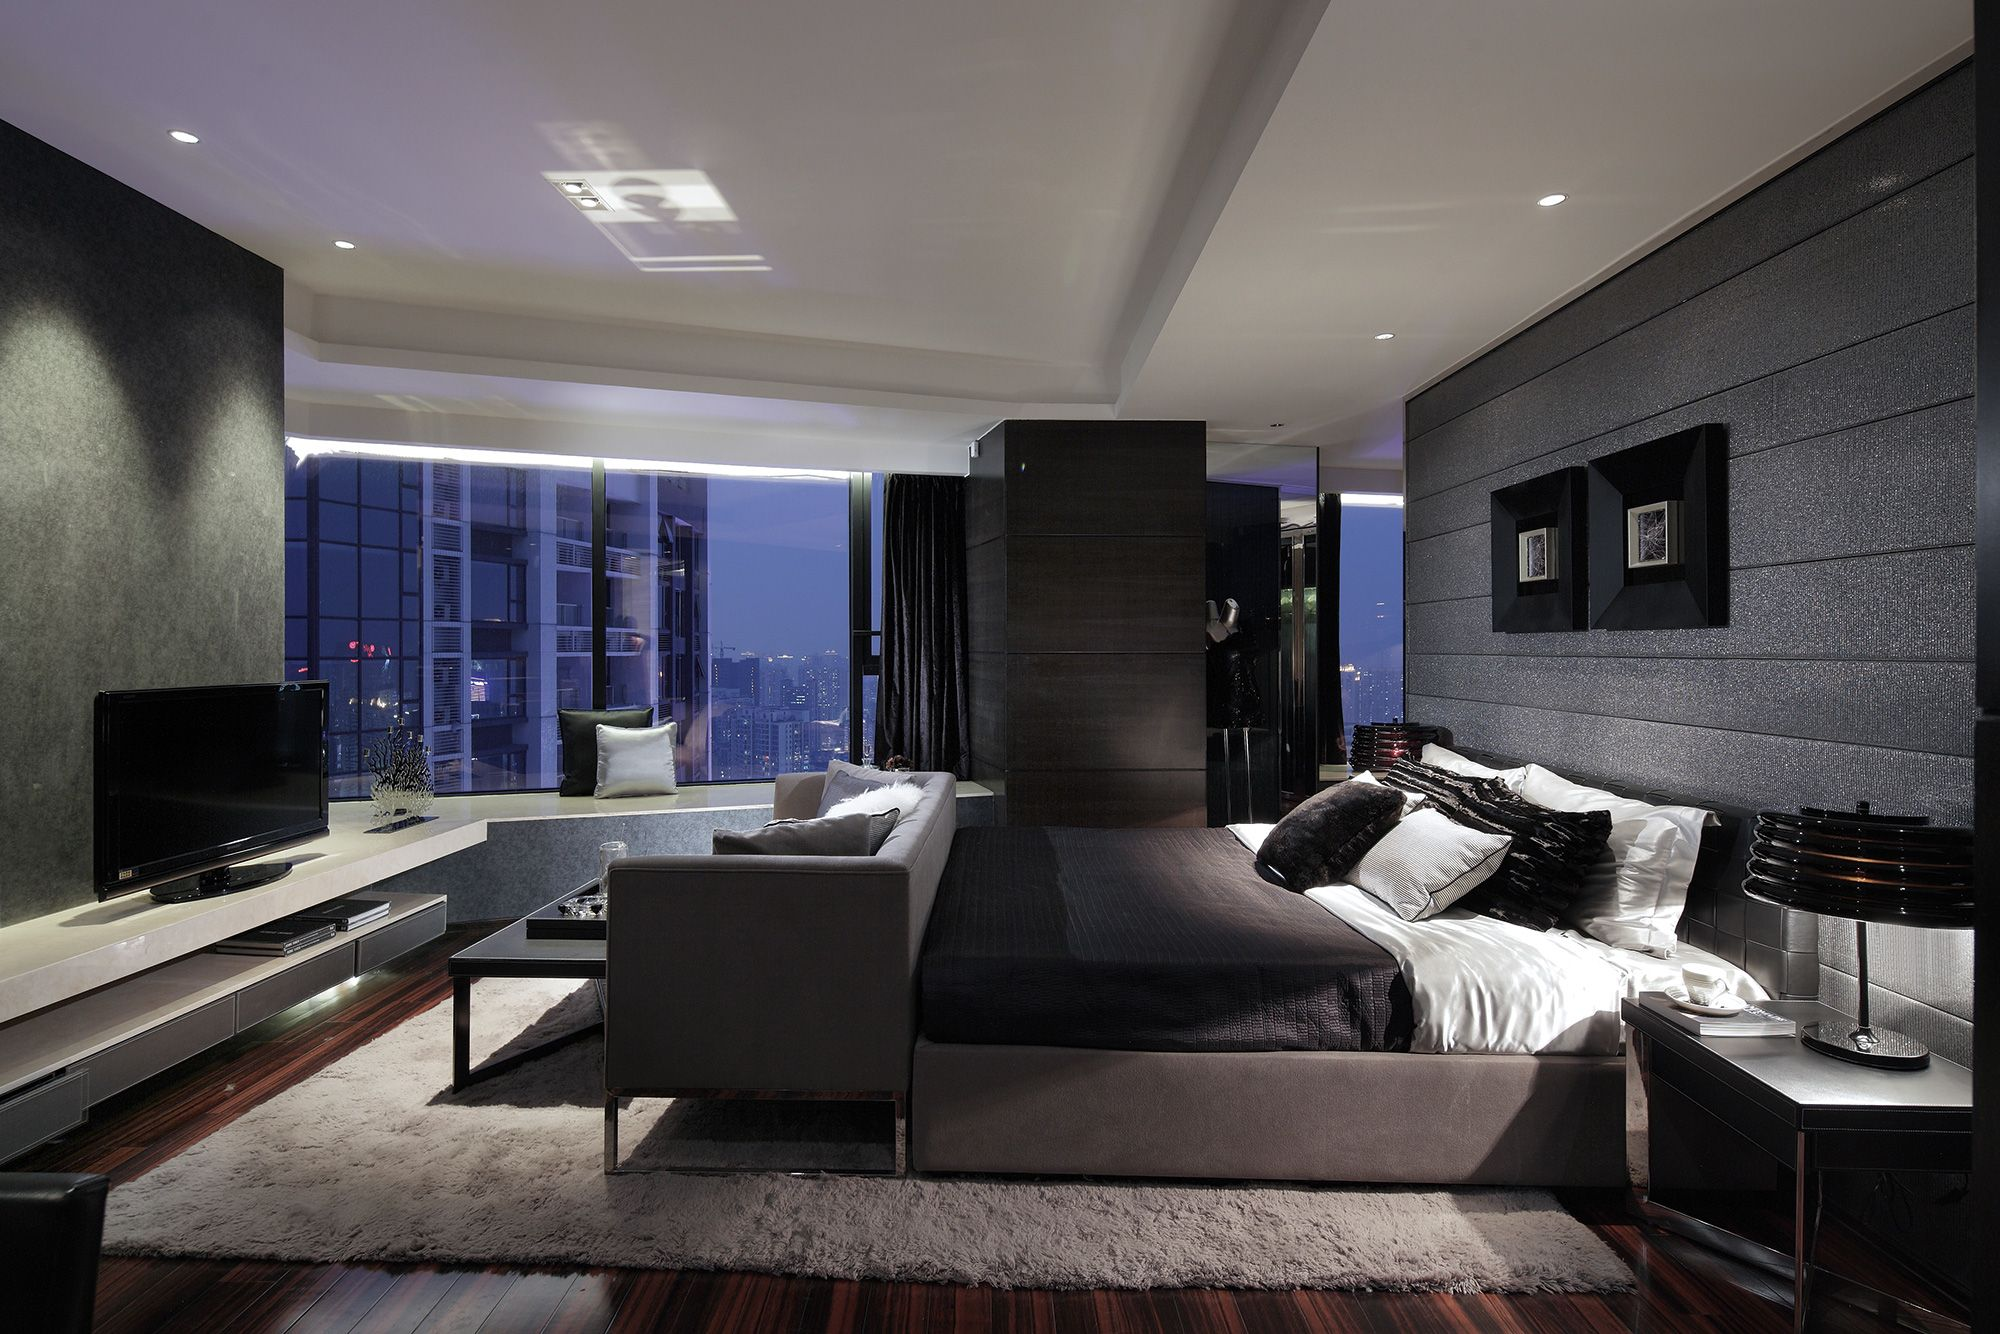 Luxury Master Bedrooms 5 men's bachelor pad decor ideas for a modern look | modern master